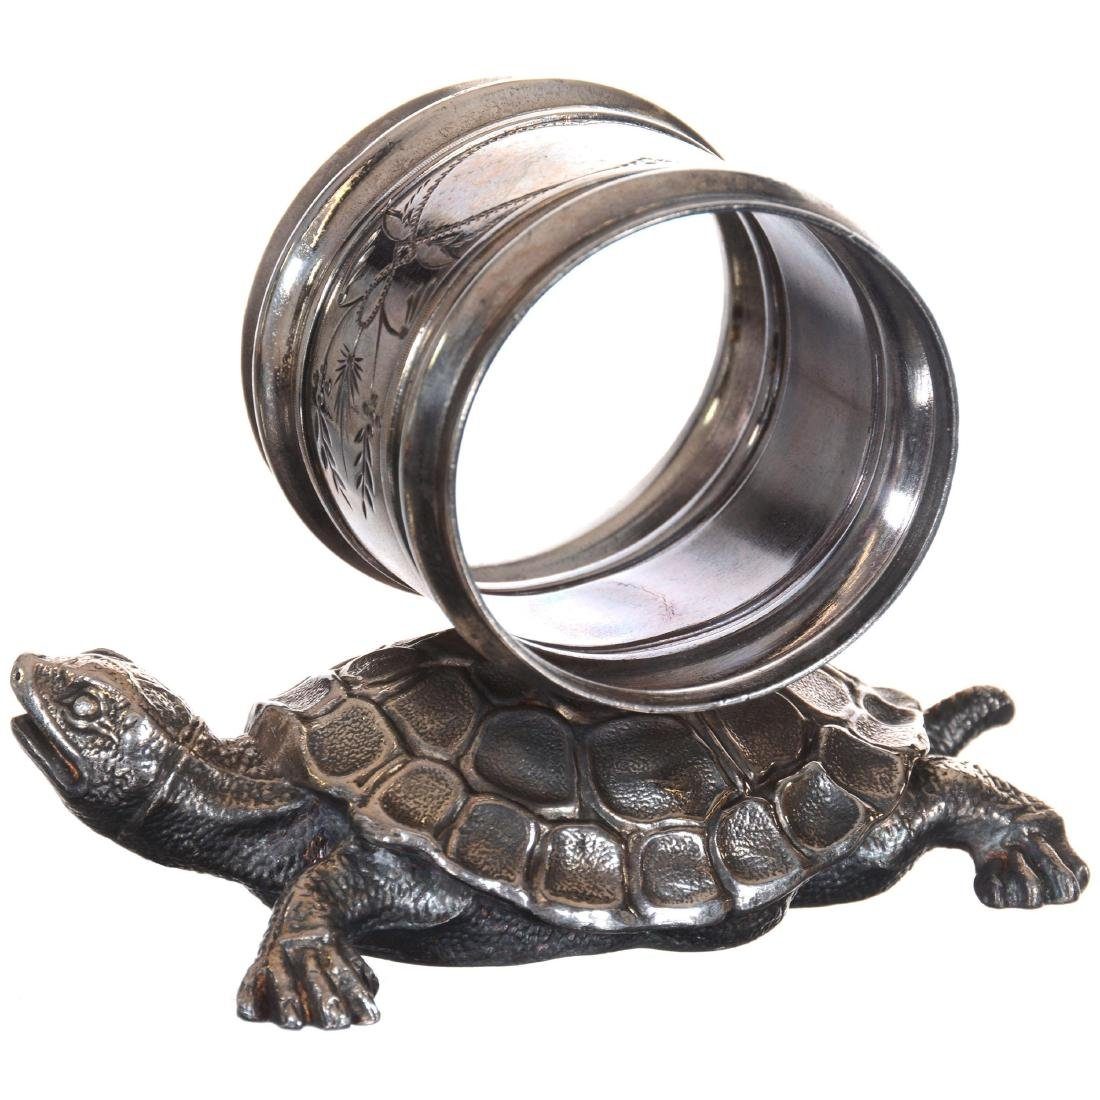 Two Figural Turtle Silver-plate Napkin Rings - 2